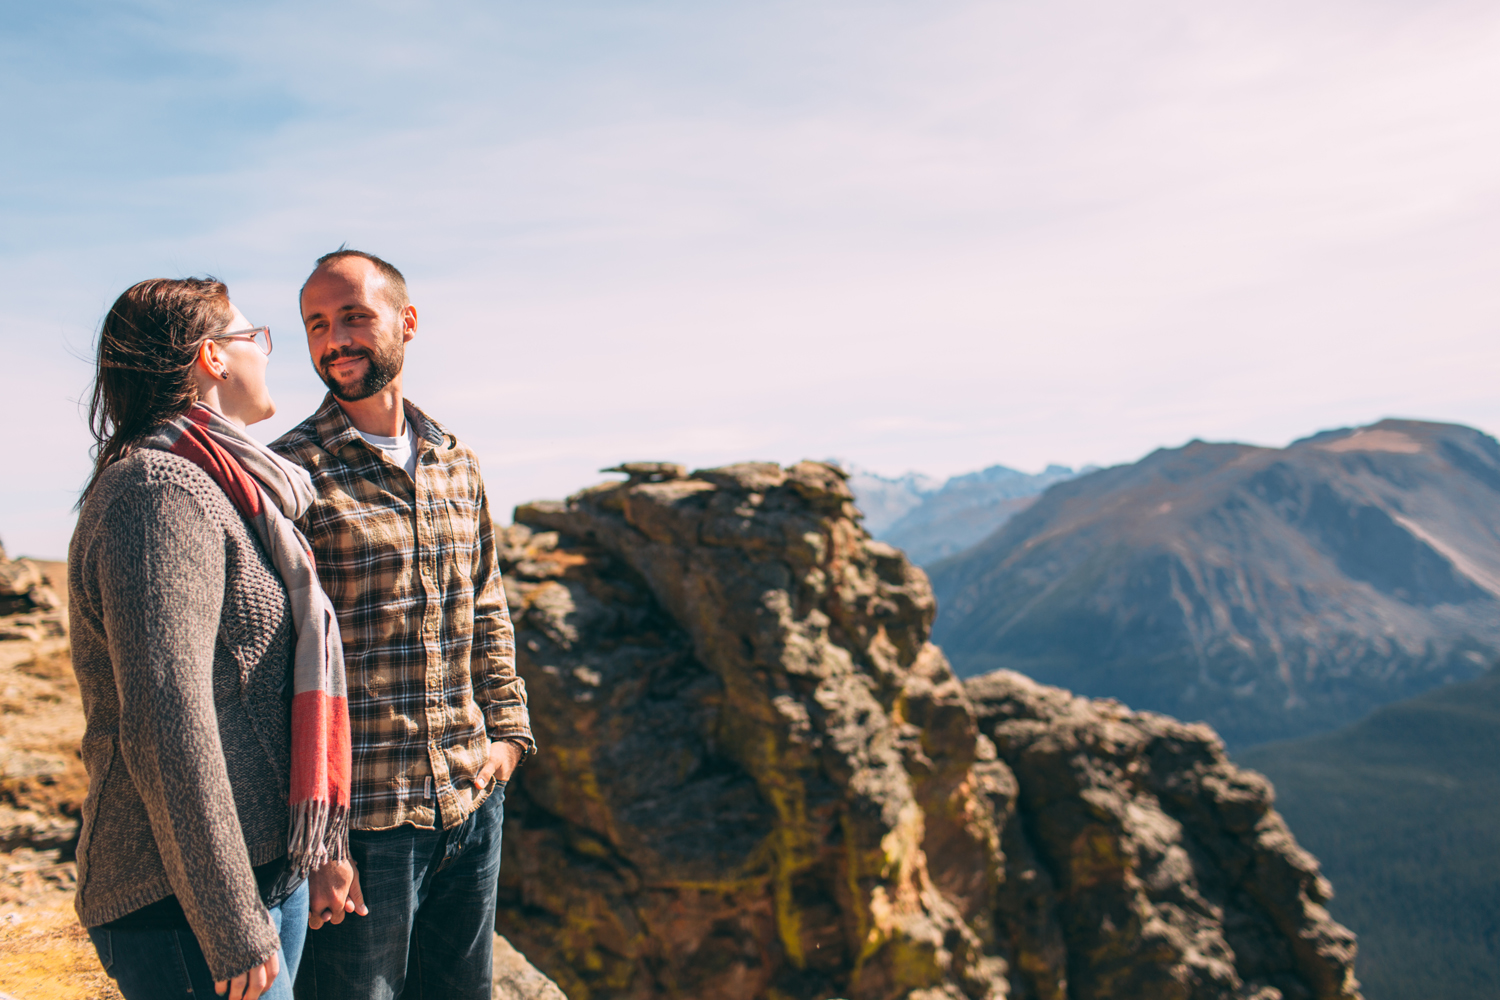 Jillian VanZytveld Photography Rocky Mountain National Park Engagement Portraits - 60.jpg